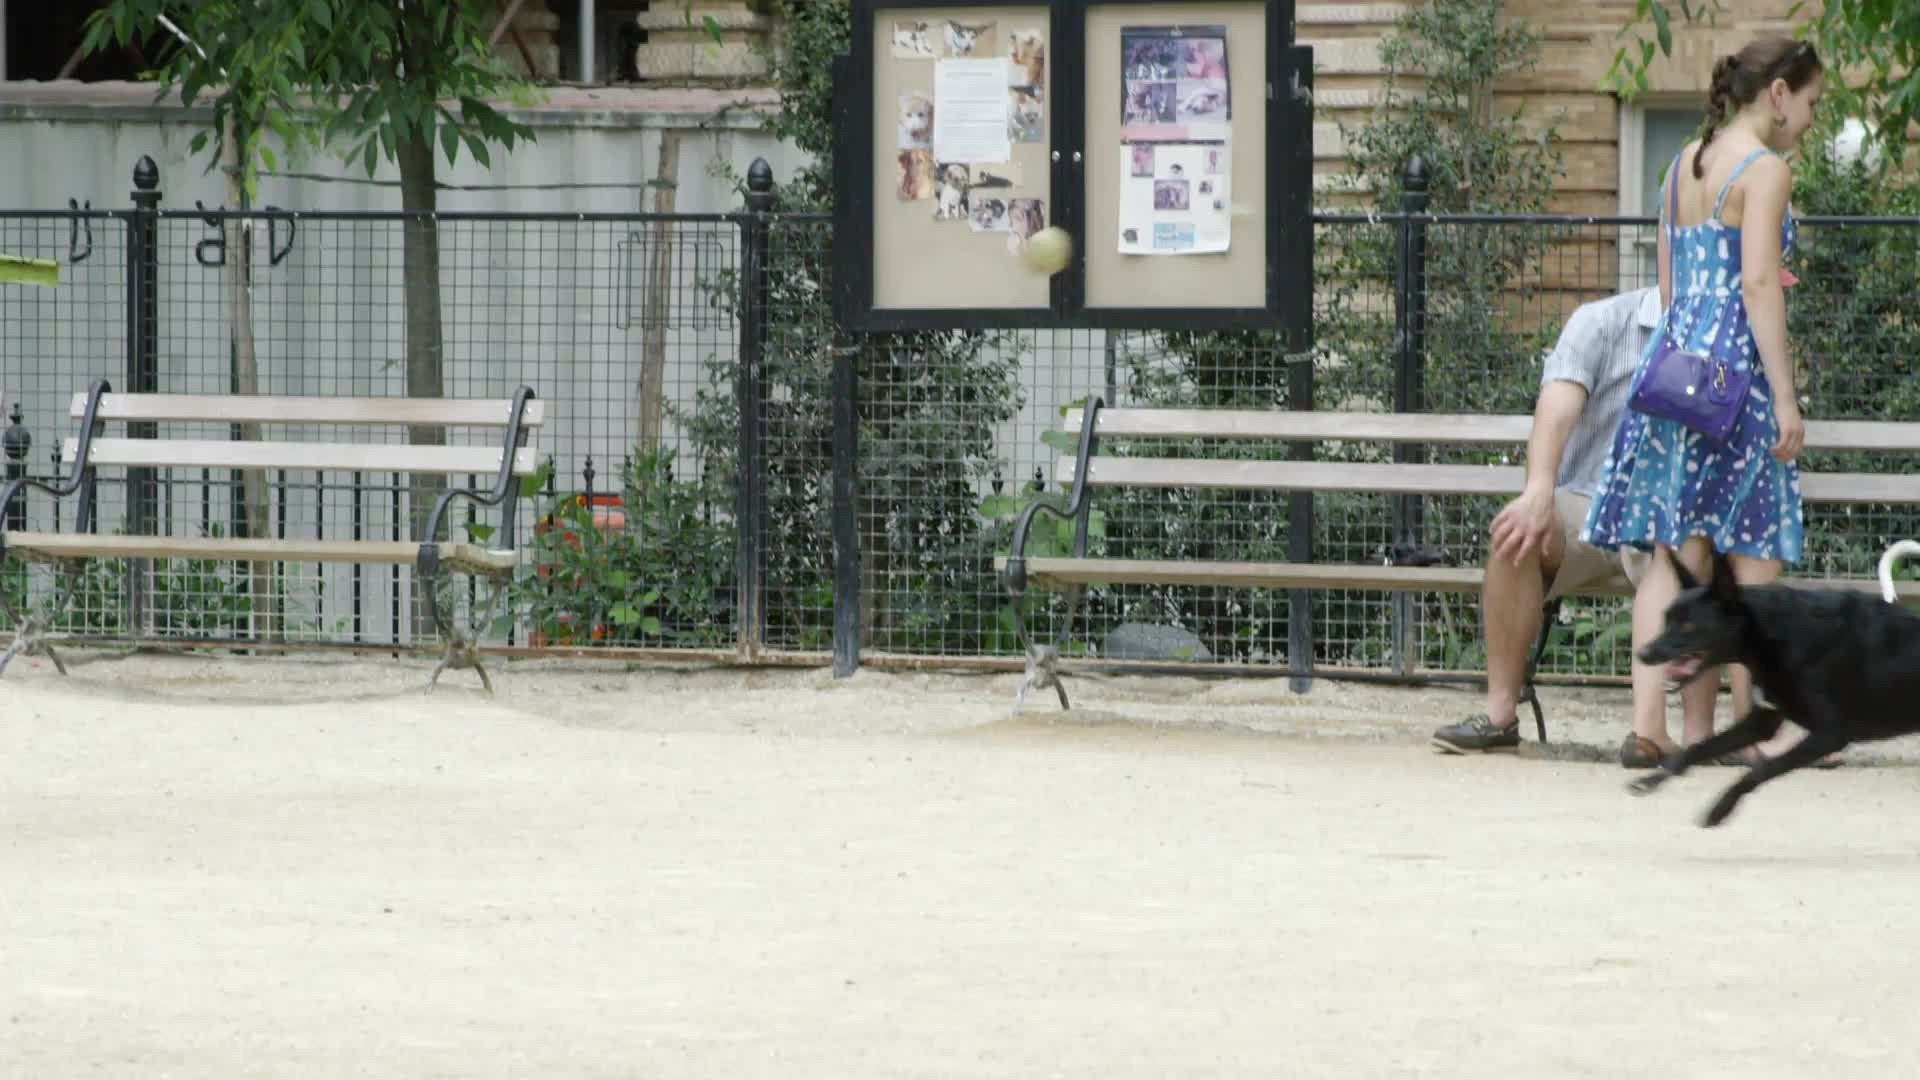 black dog running and catching ball - fetching at dog run on summer day in Washington Square Park in NYC